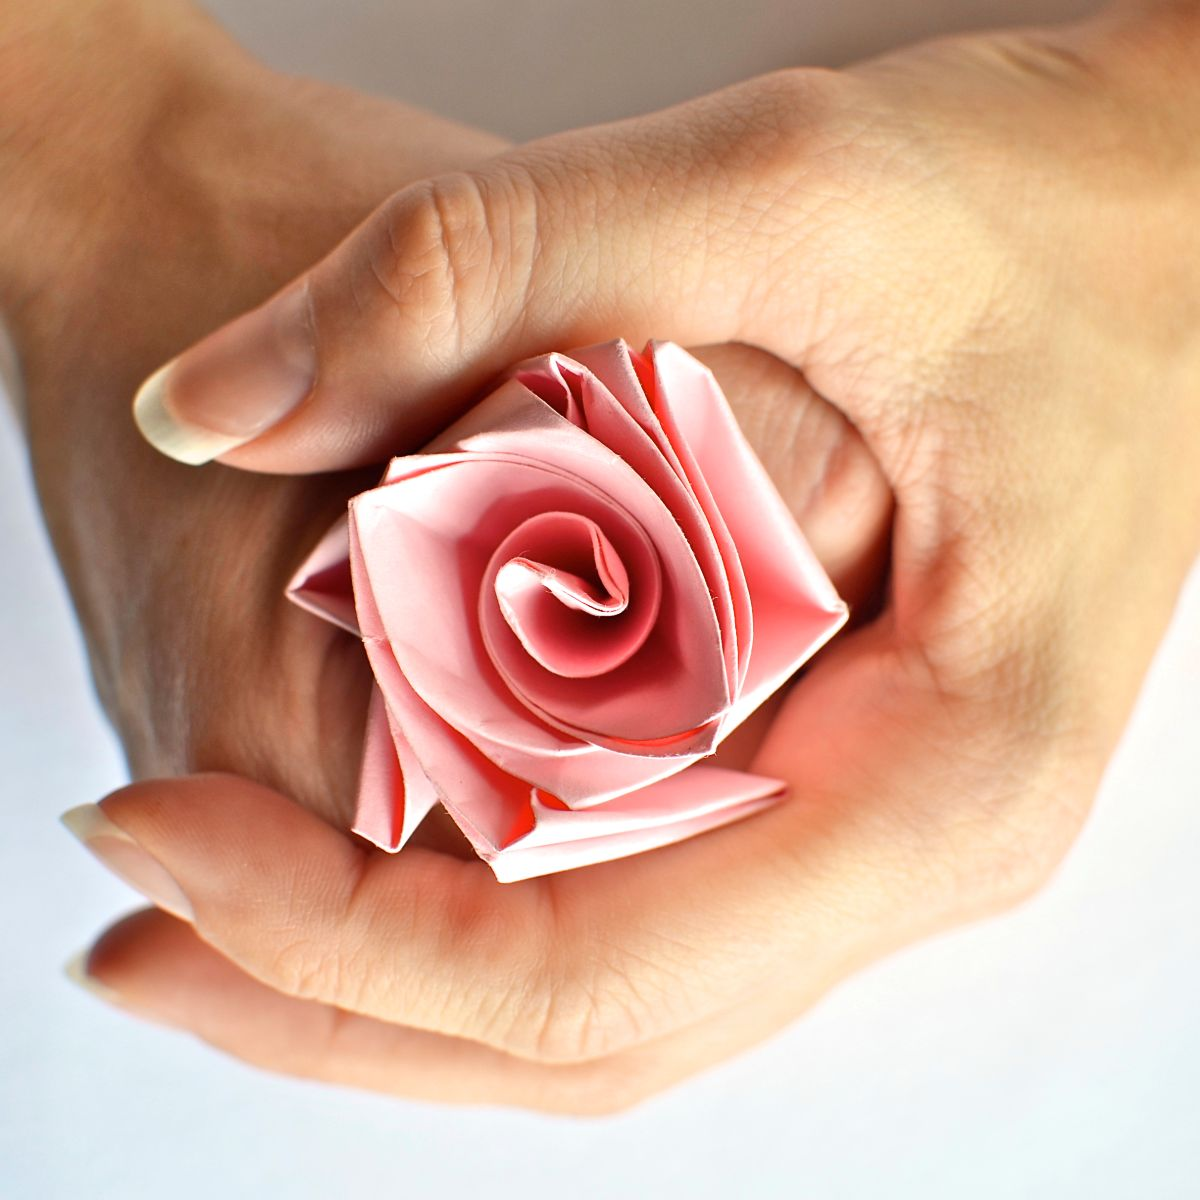 A woman's hands holding a pink paper rose